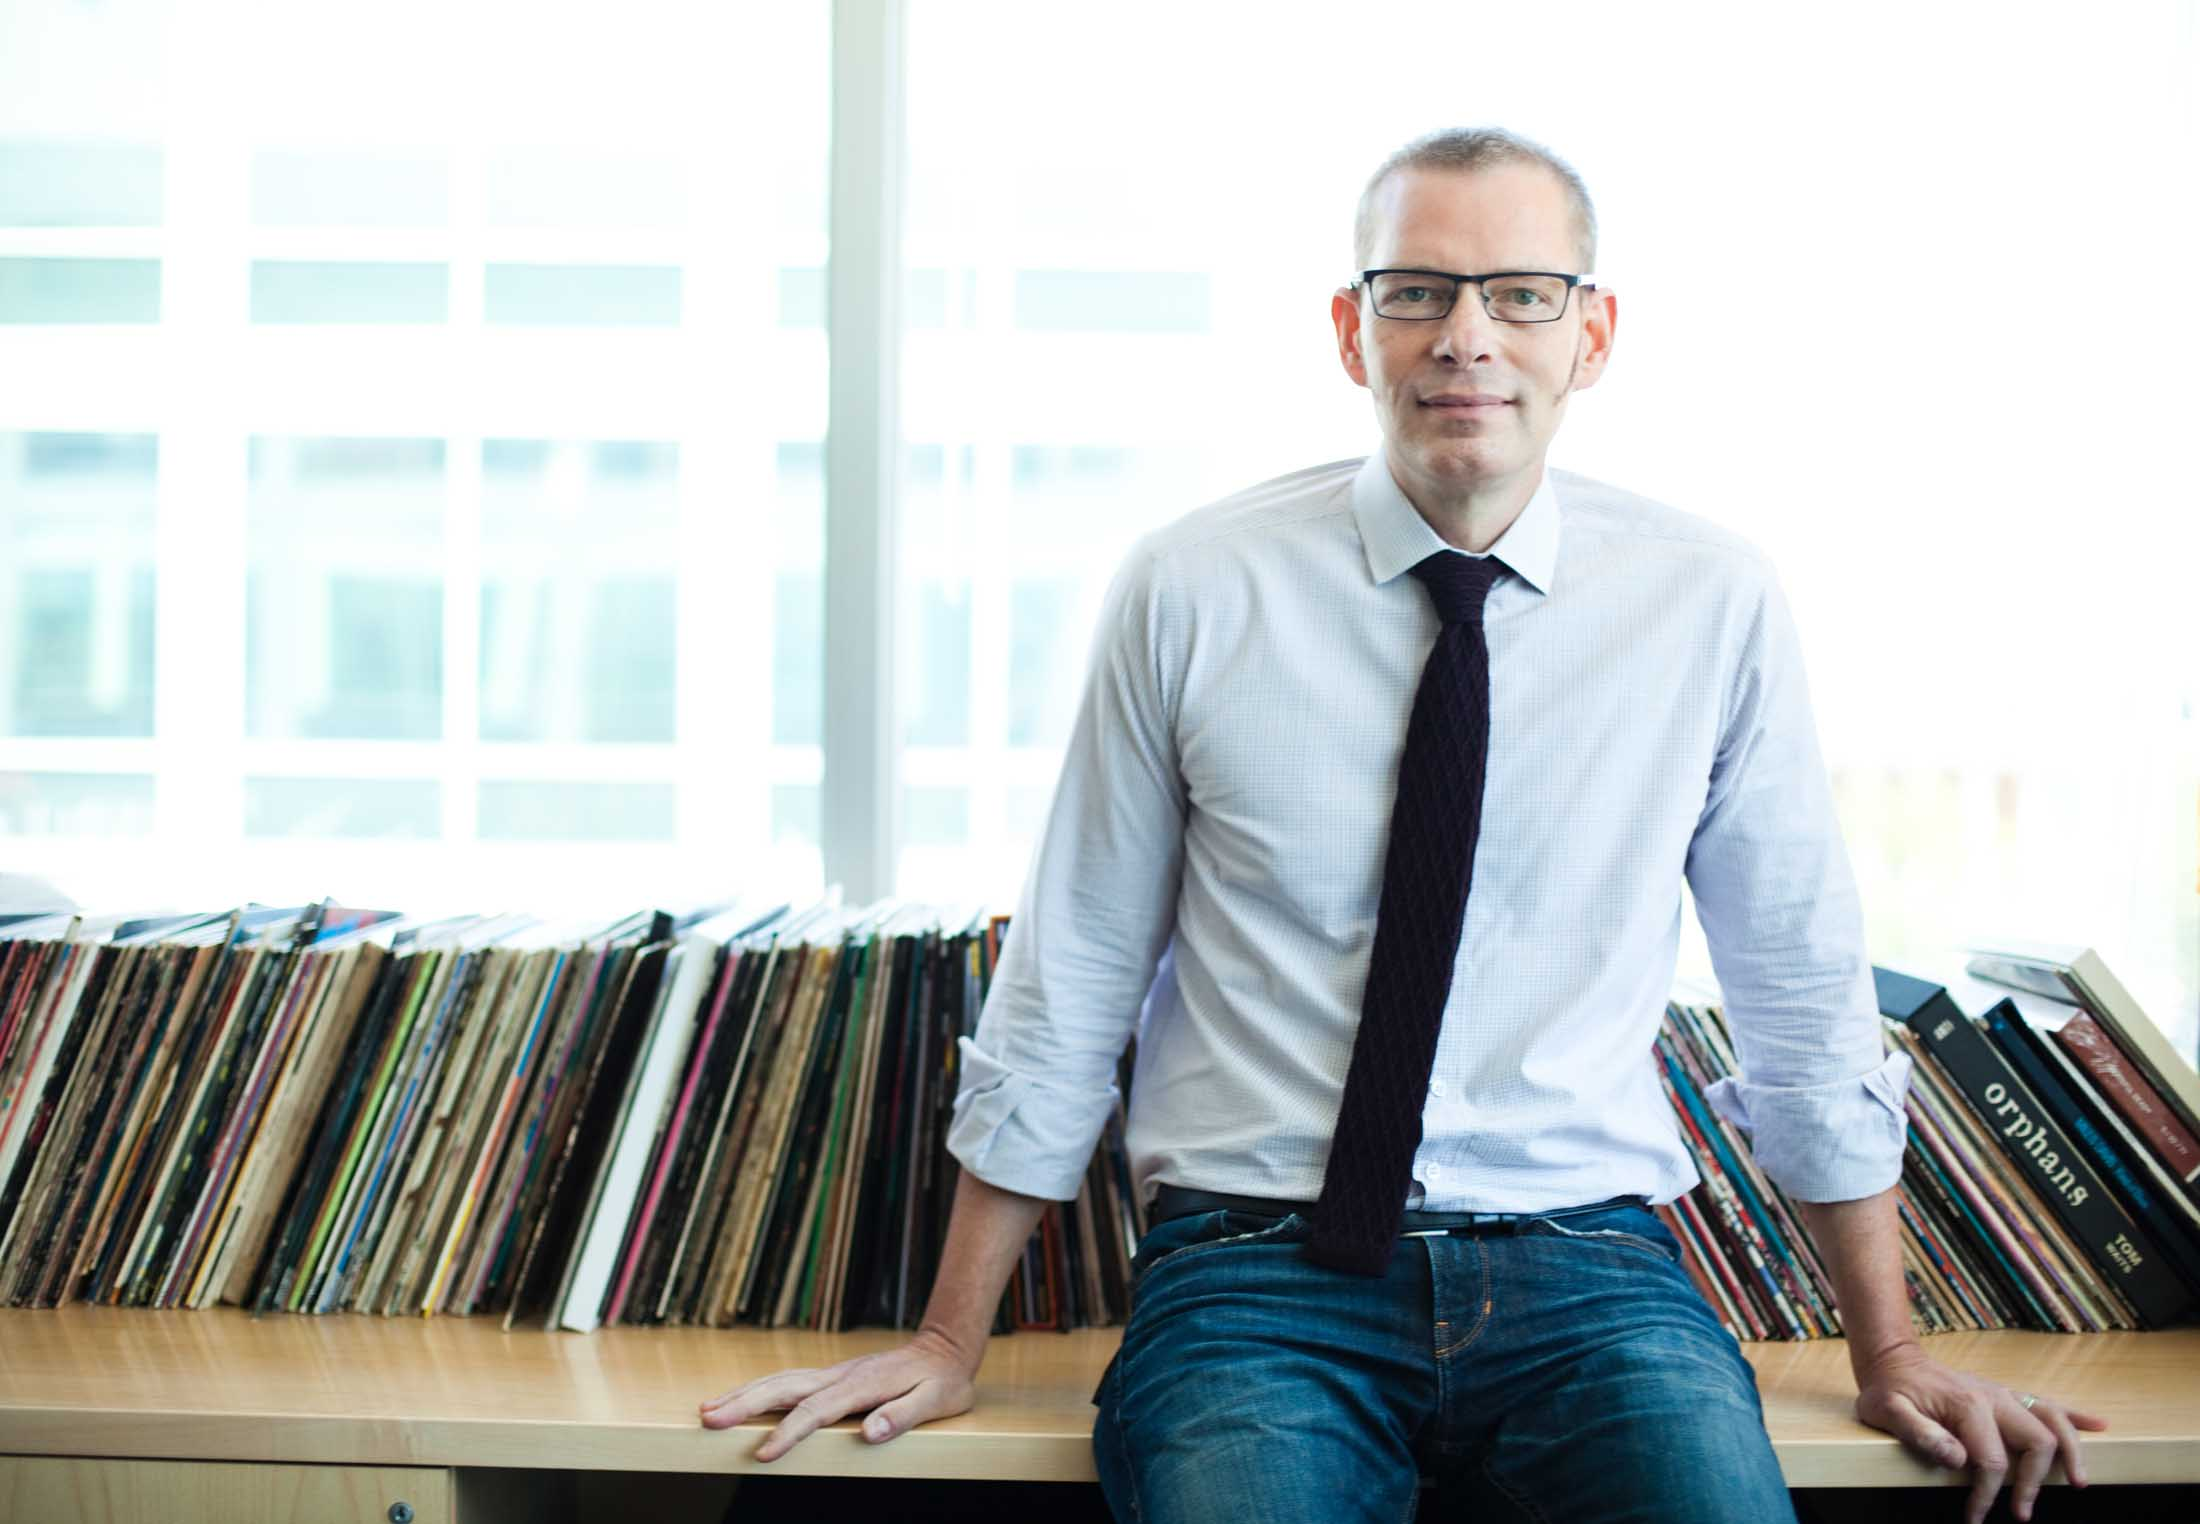 Matt Kibbe - Washingtonian